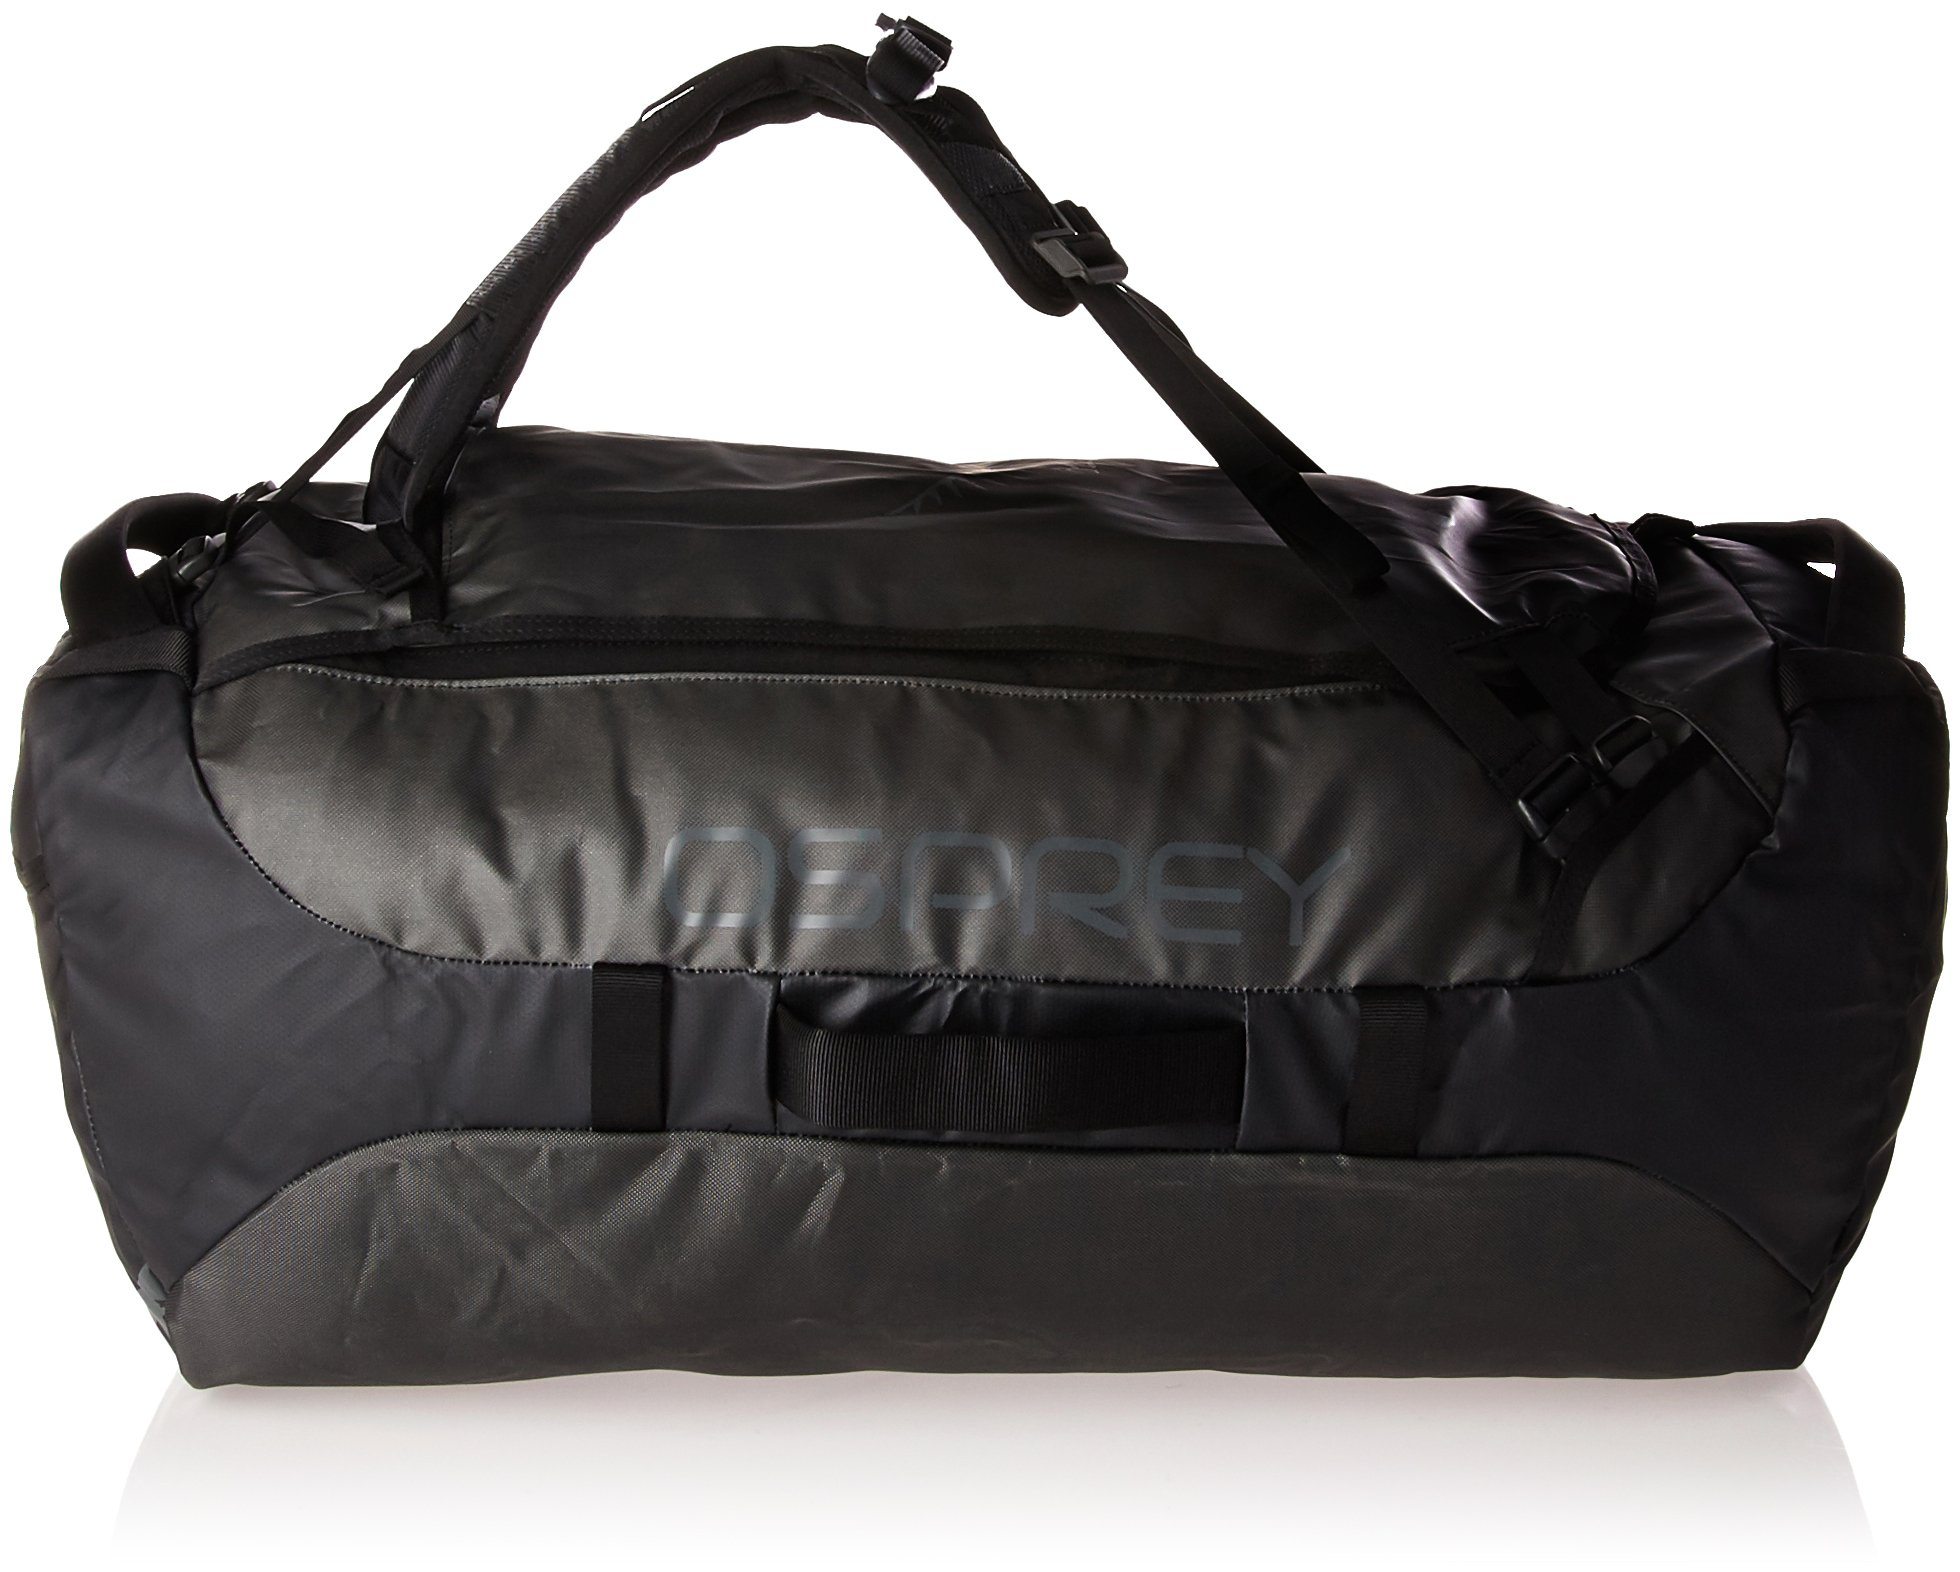 Osprey Packs Transporter 95 Expedition Duffel, Black, One Size